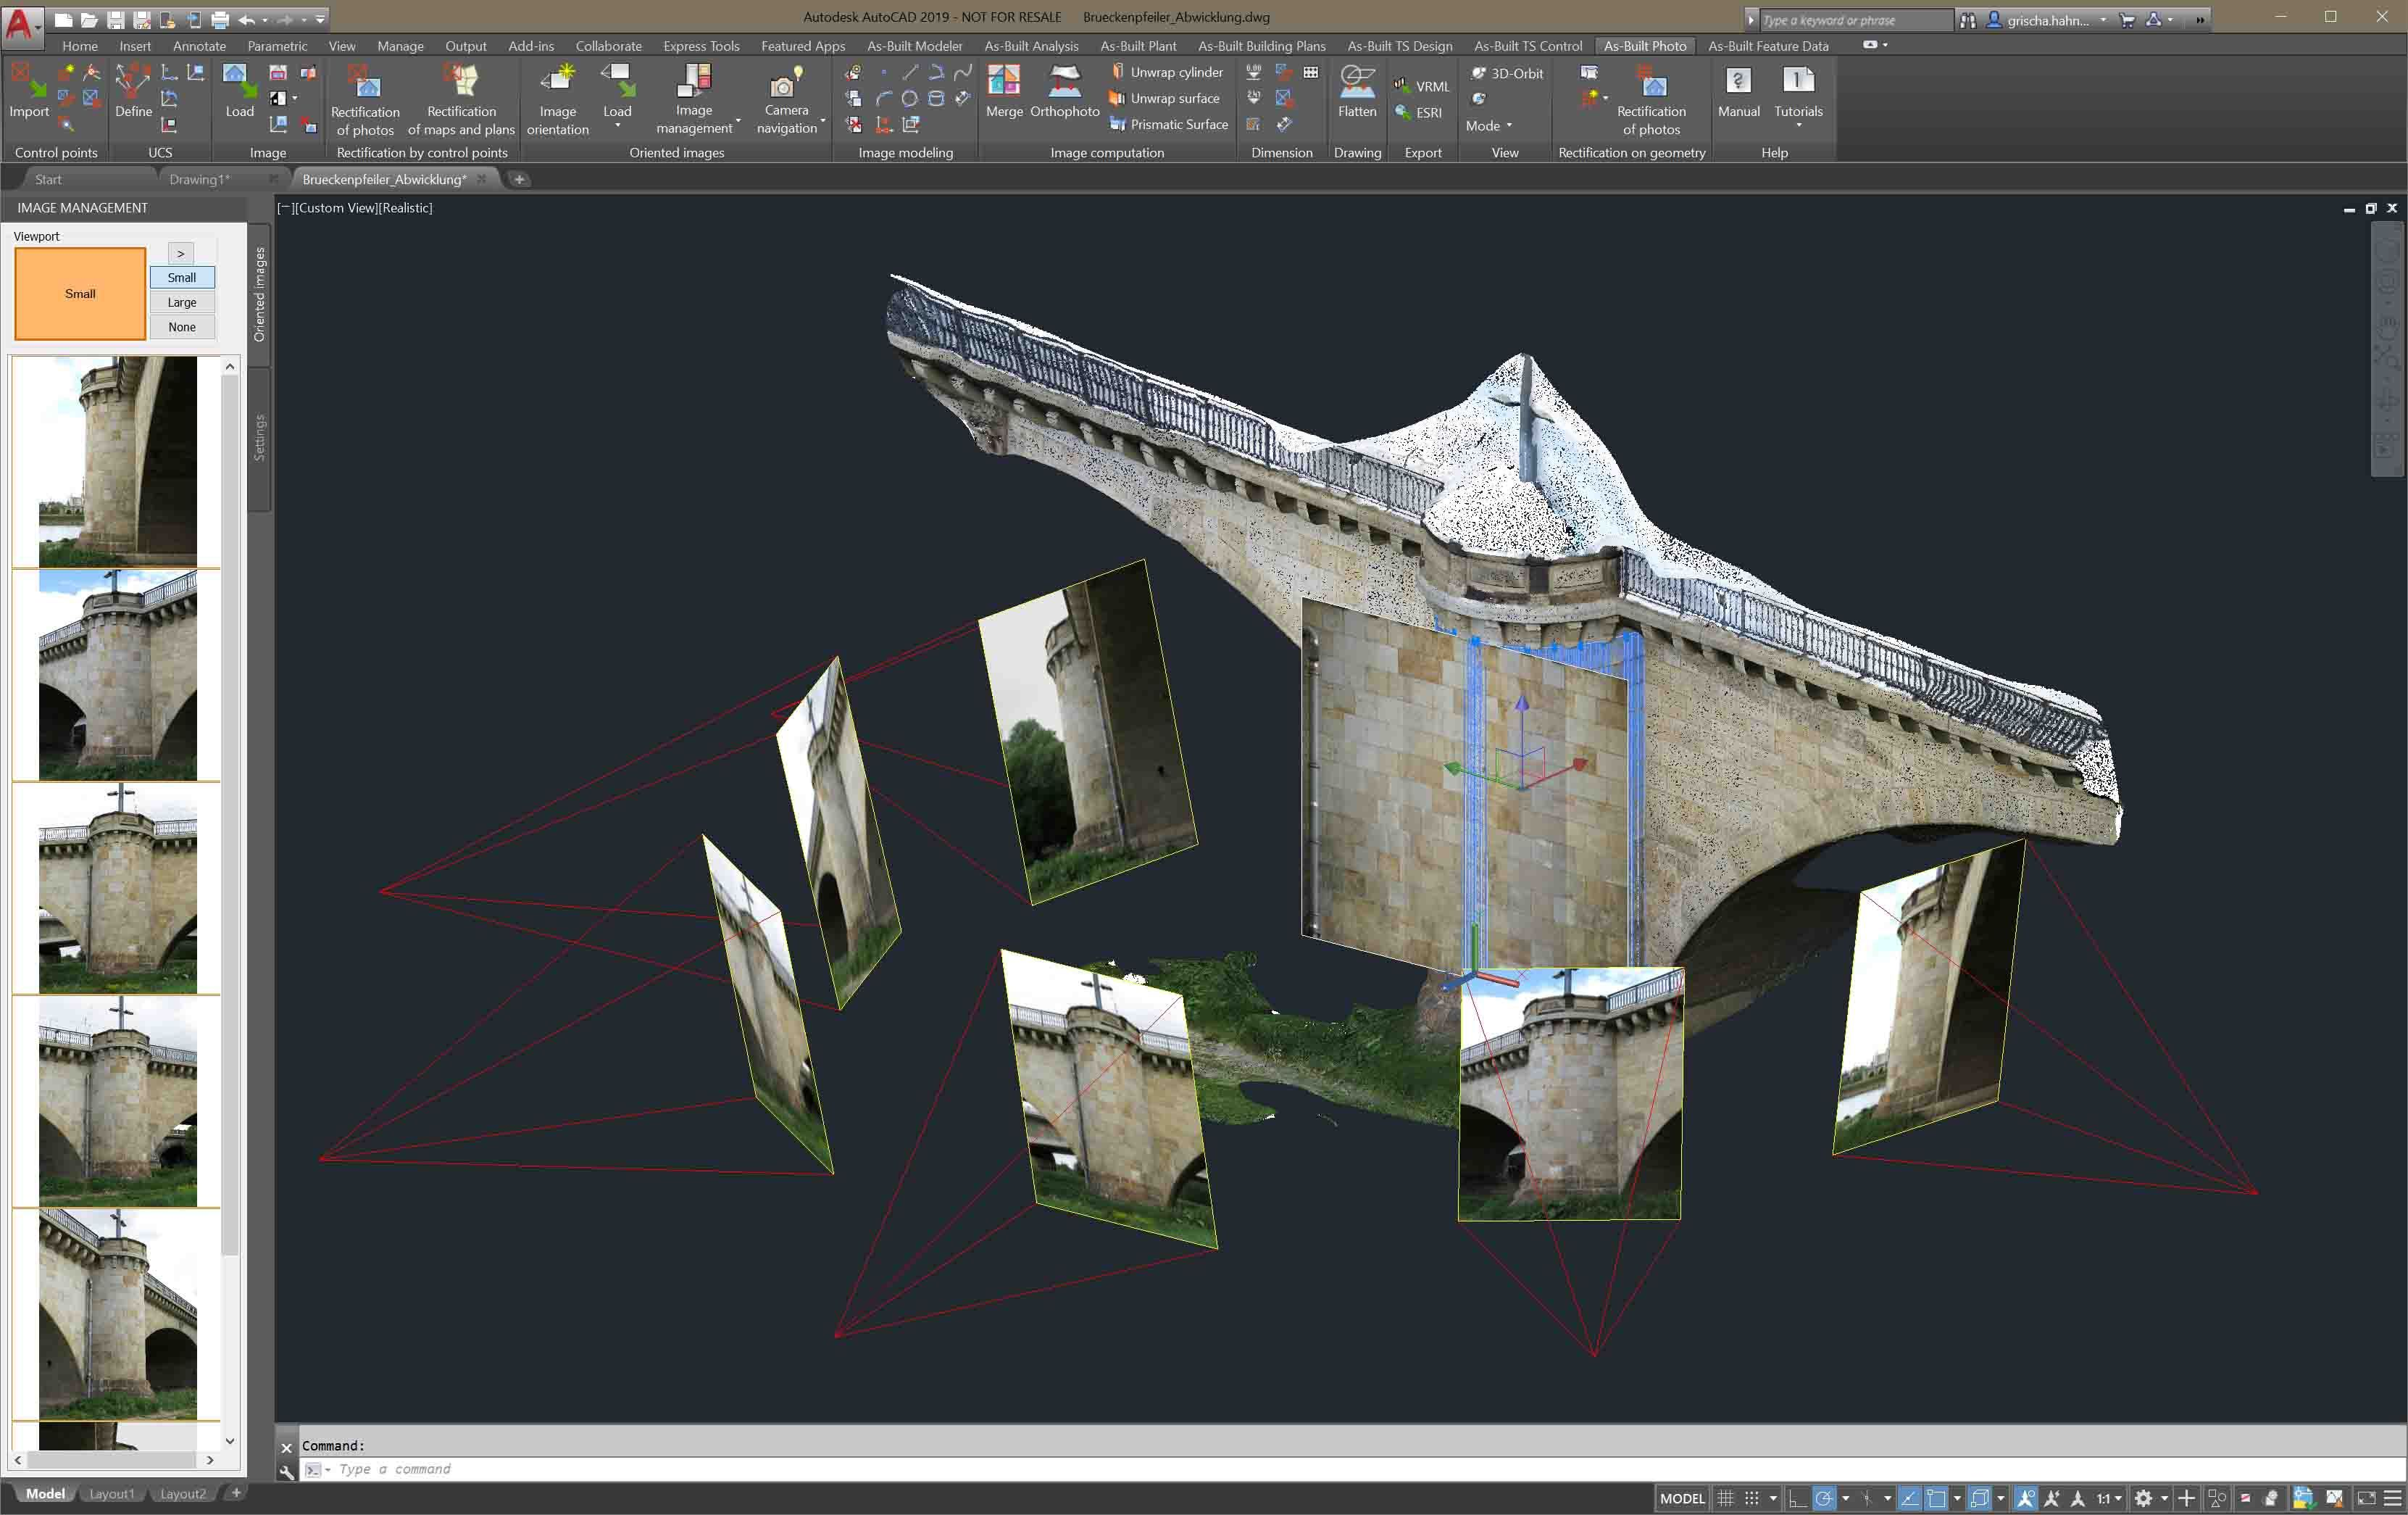 alt - https://static.comunicae.com/photos/notas/1196791/1529679014_As_Built_for_AutoCAD_Software_Unwrapping_modeled_surface_based_on_orientated_images_copia_BAJA.jpg